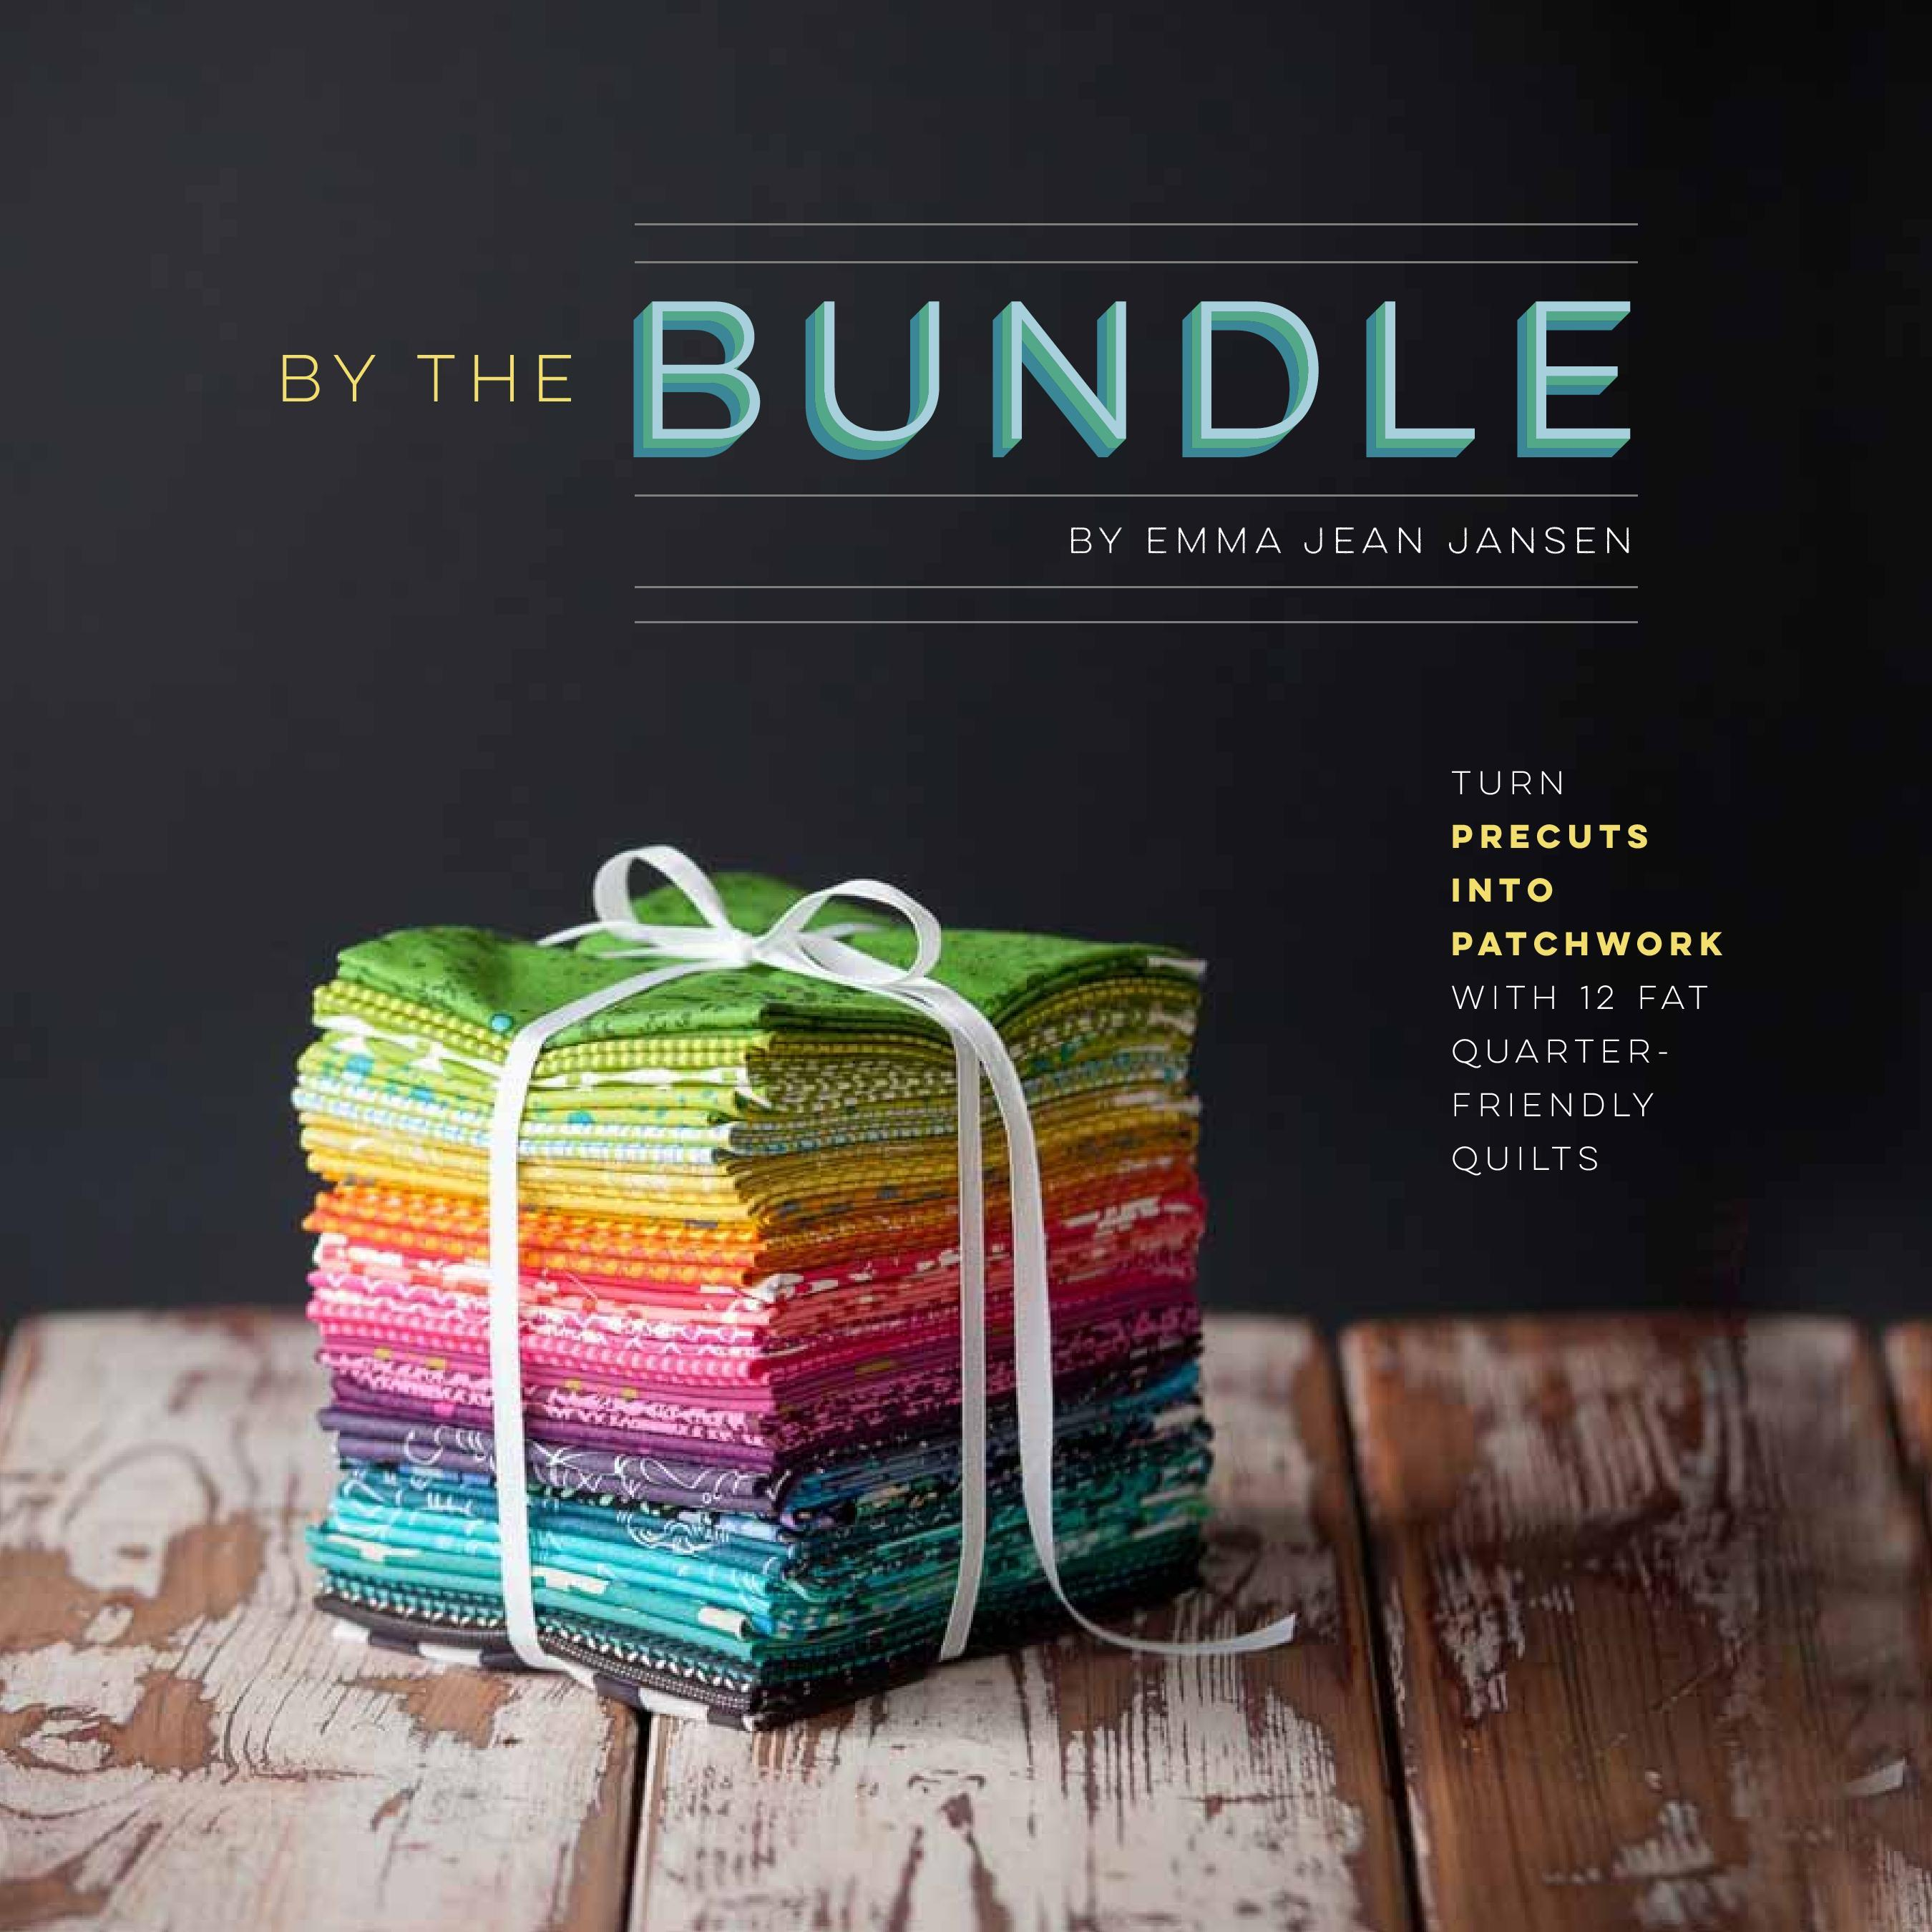 By The Bundle by Emma Jean Jansen